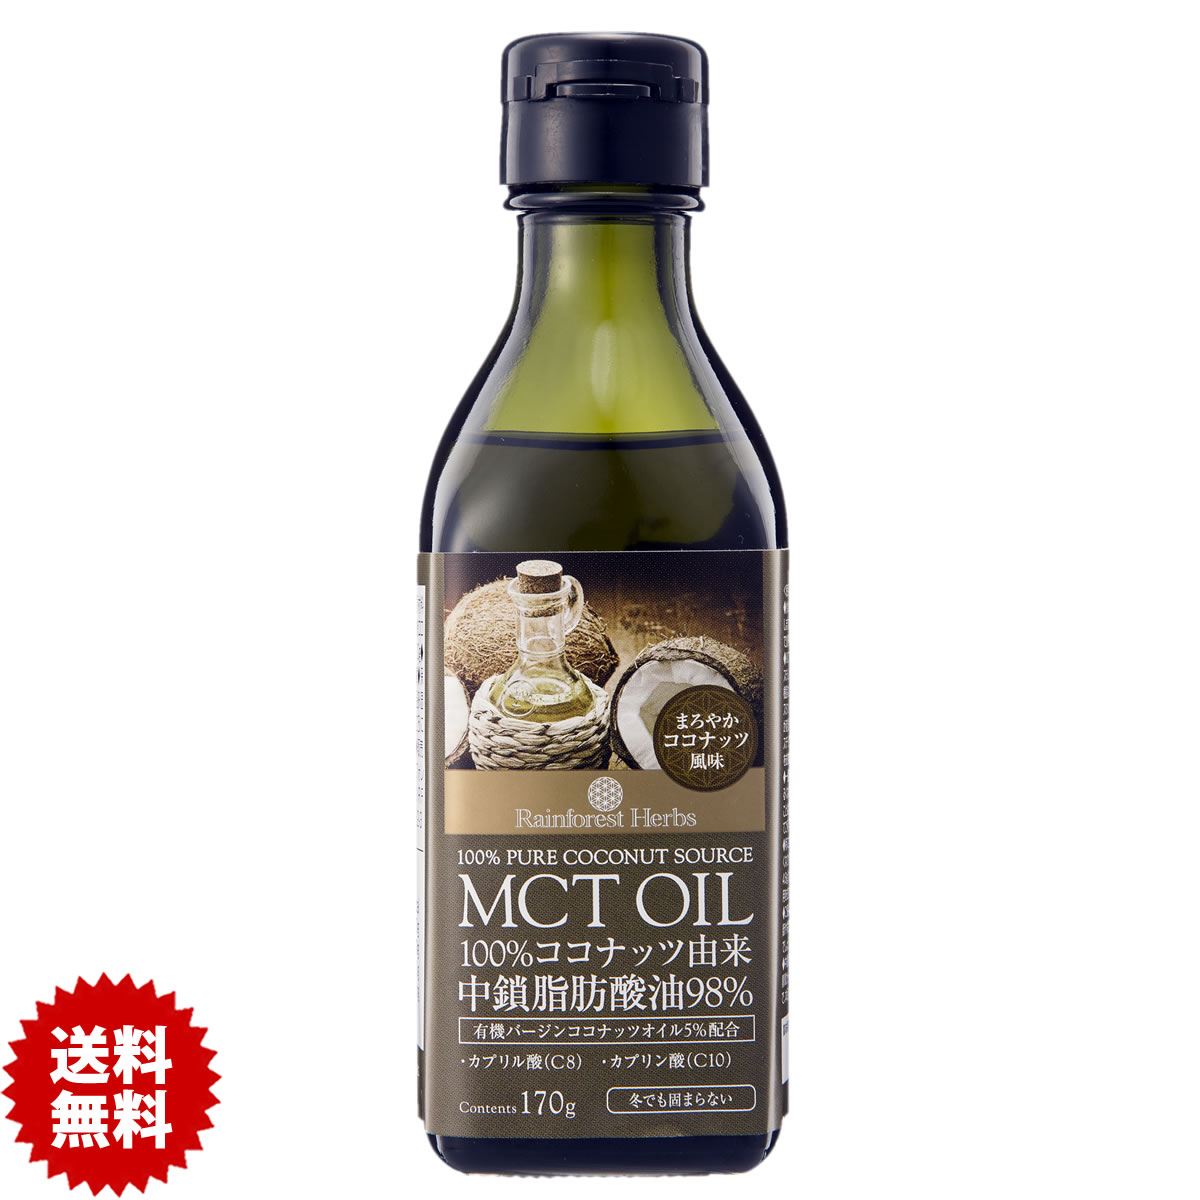 8位 MCT OIL 100% PURE COCONUT SOURCE